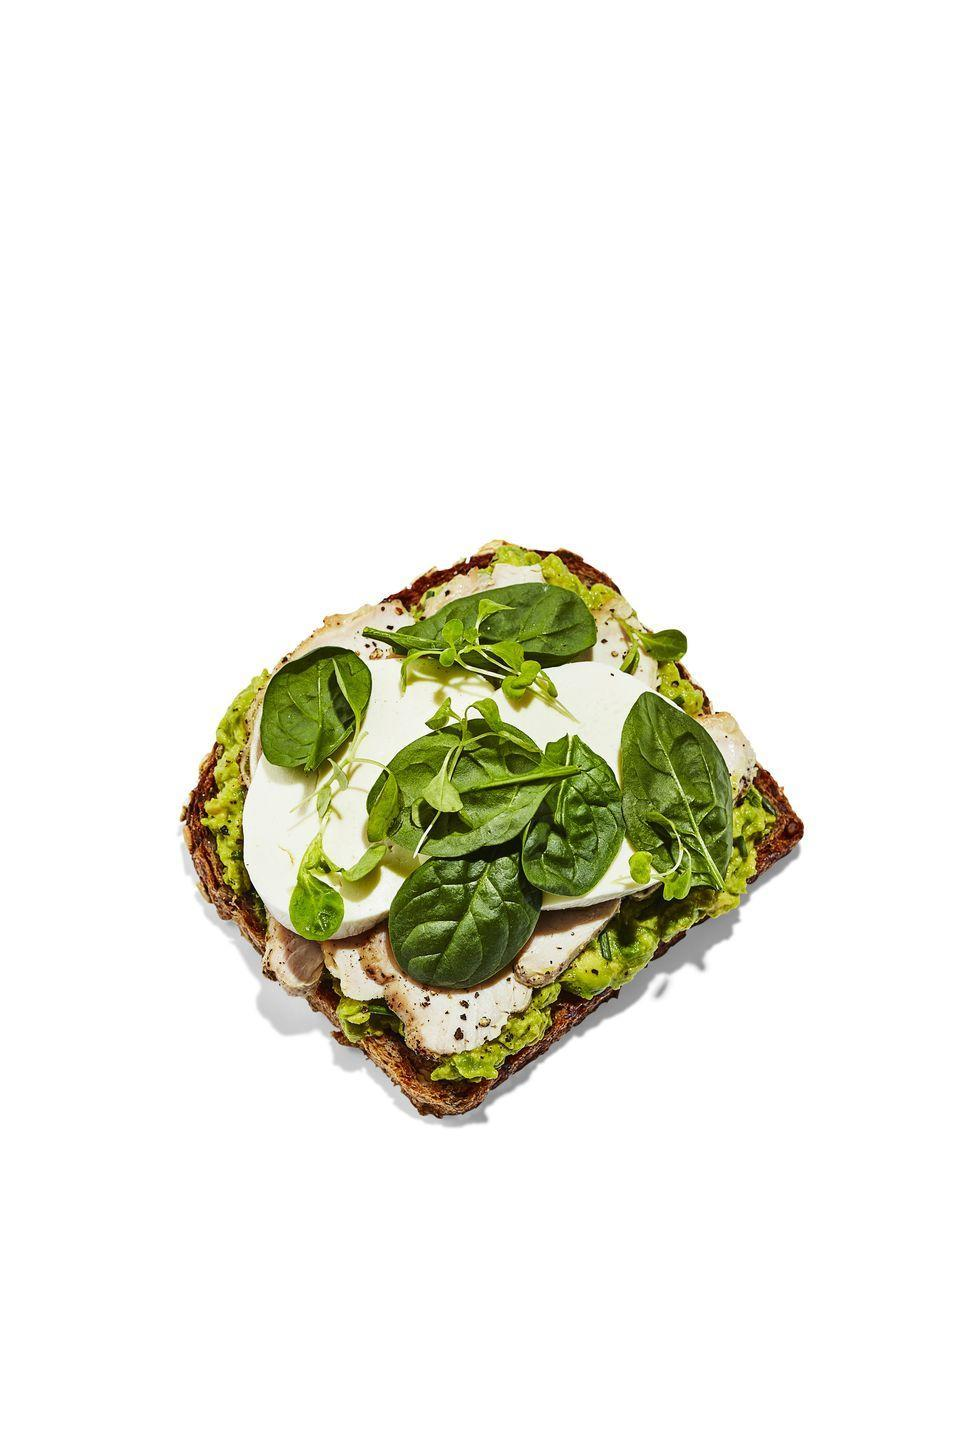 <p><strong>BREAD:</strong> 4 slices sprouted grain</p><p><strong>SPREAD:</strong> 1 mashed avocado + 1 minced garlic clove + 1 Tbsp chopped chives + 1 Tbsp fresh lemon juice</p><p><strong>TOPPING: </strong>2 fat slices fresh mozzarella + 1 cup baby spinach + ½ cup microgreens</p>